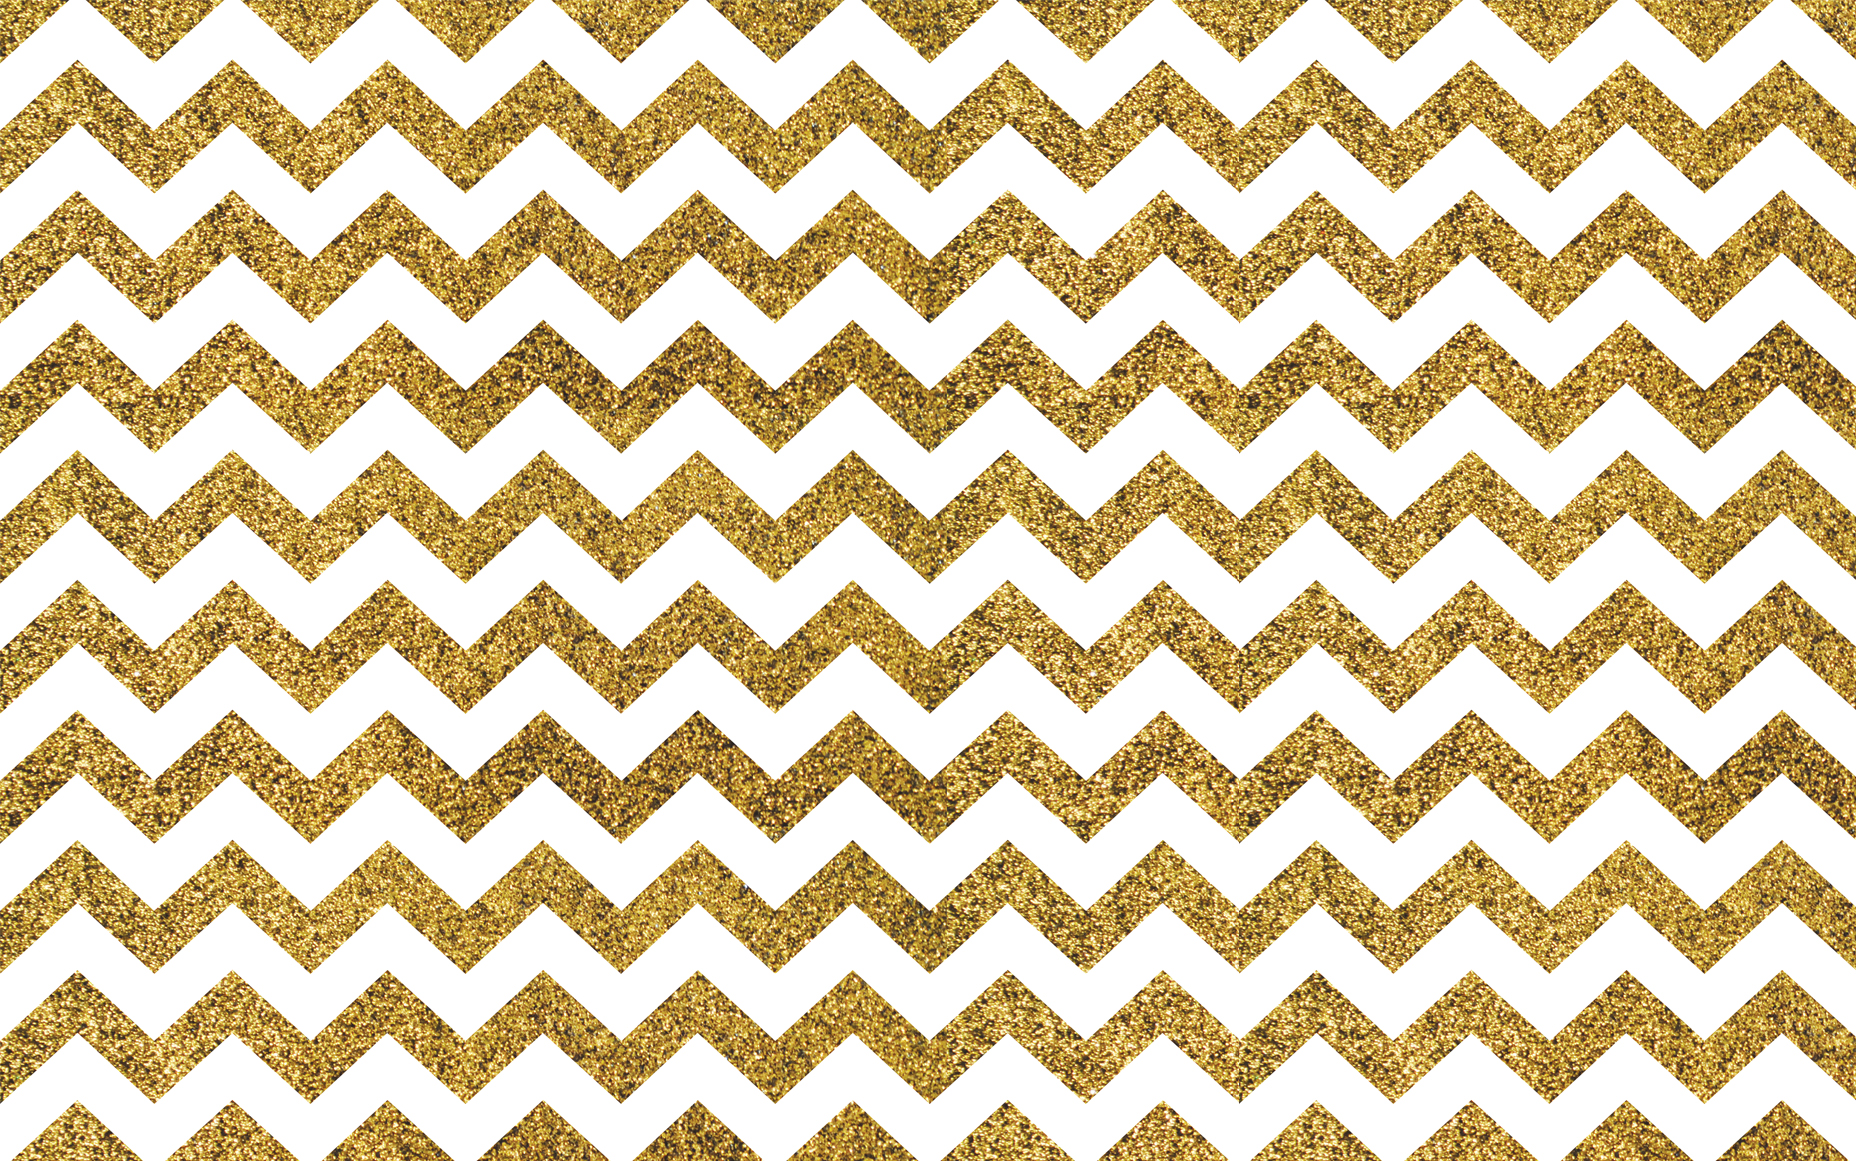 Gold Glitter Chevron Wallpaper Freebies! — Lizzy Dee Studio